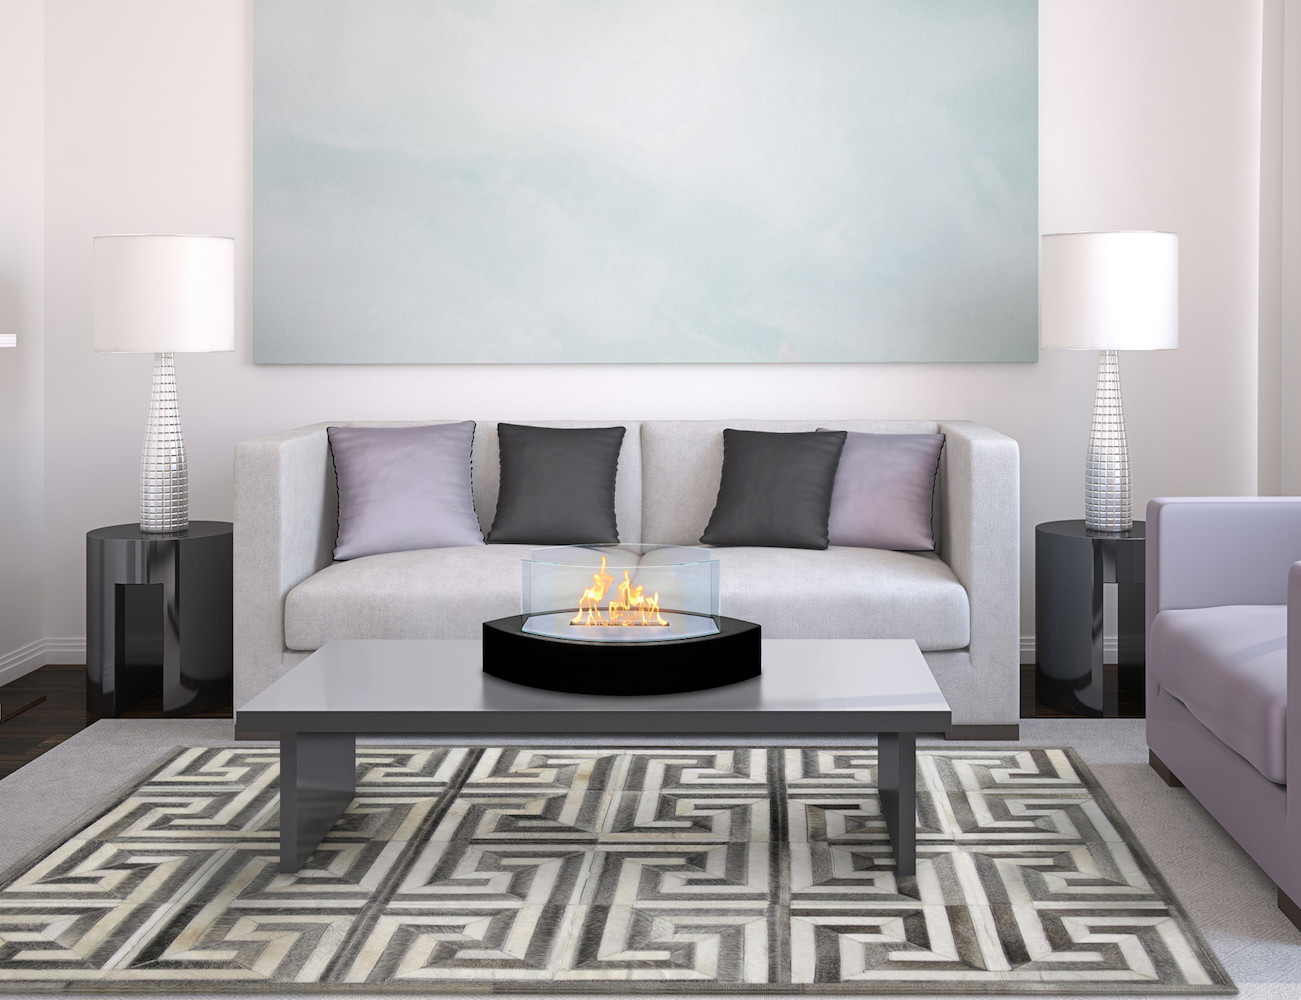 Lexington Tabletop Fireplace by Anywhere Fireplace